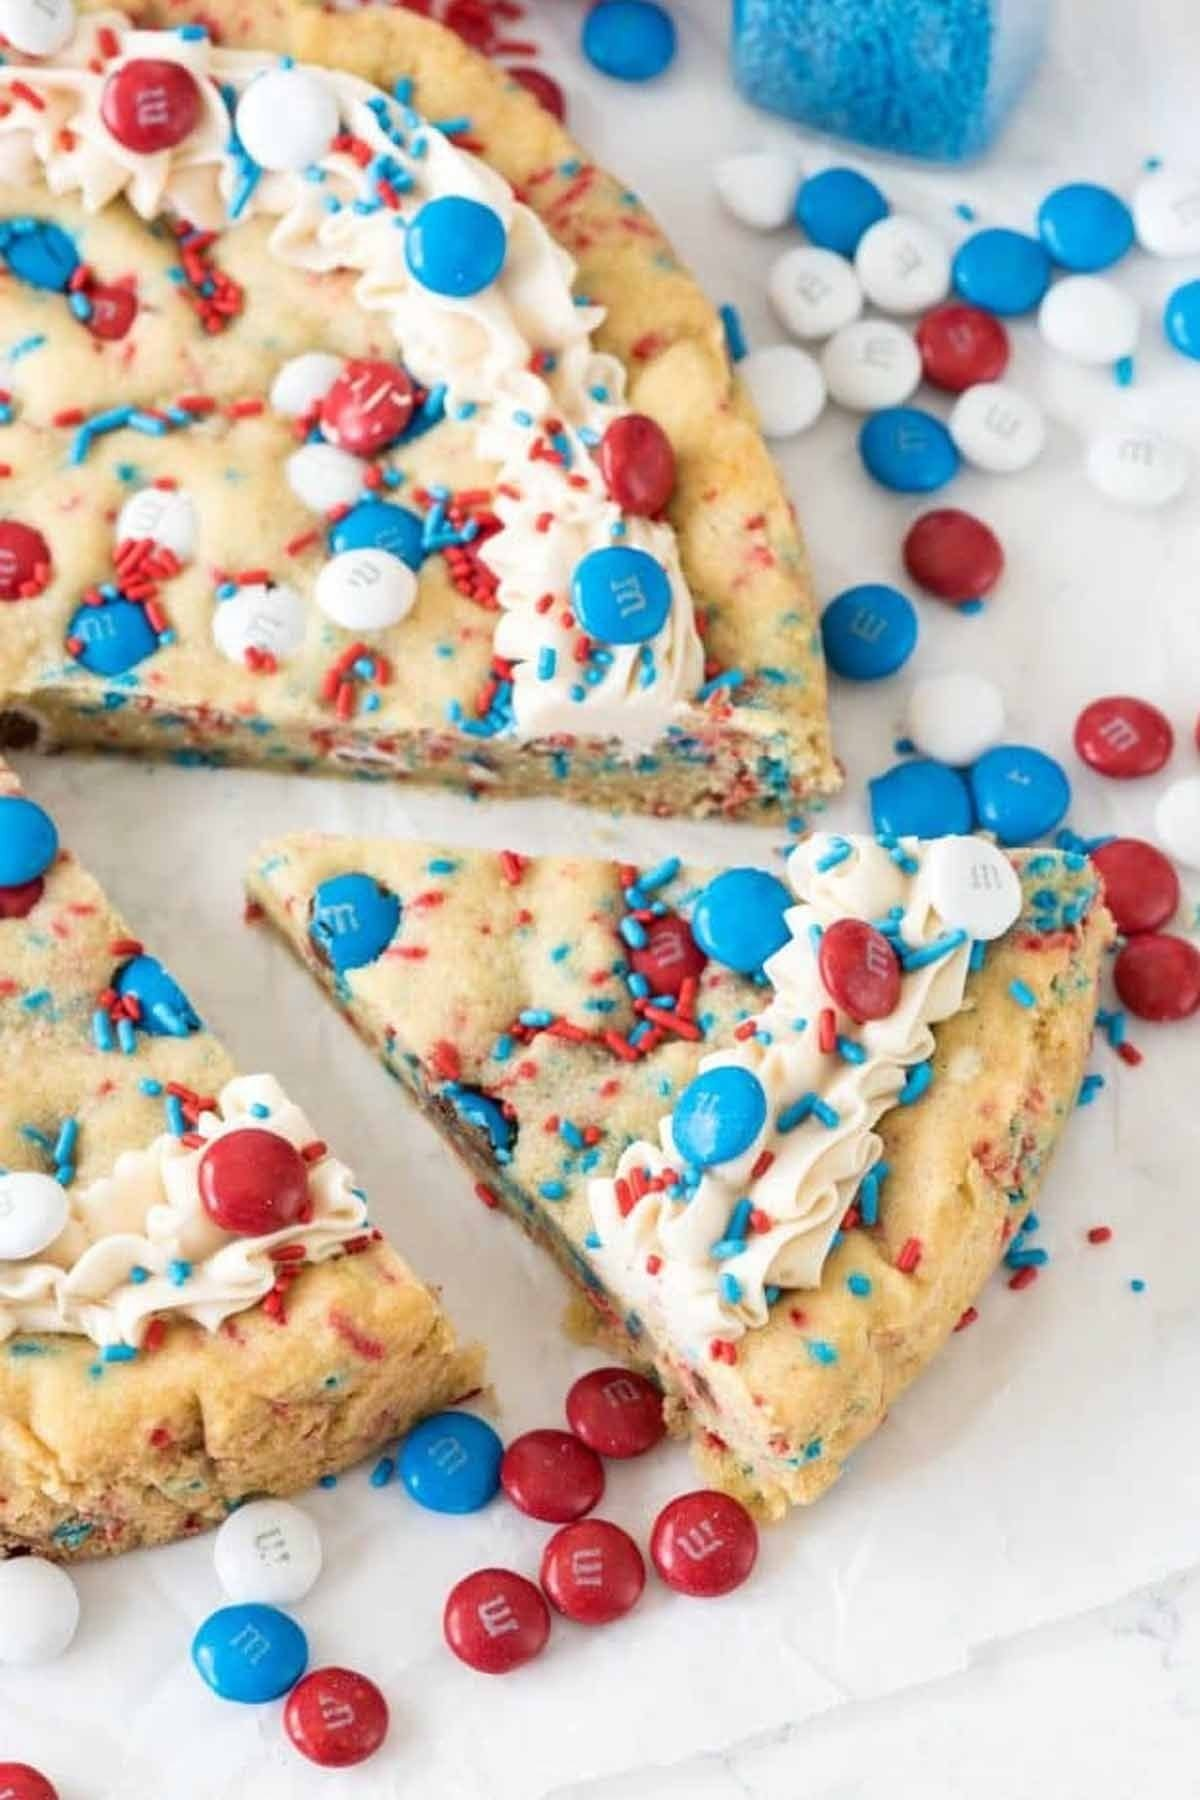 10 Stylish 4Th Of July Baking Ideas 27 easy 4th of july desserts red white and blue recipes for